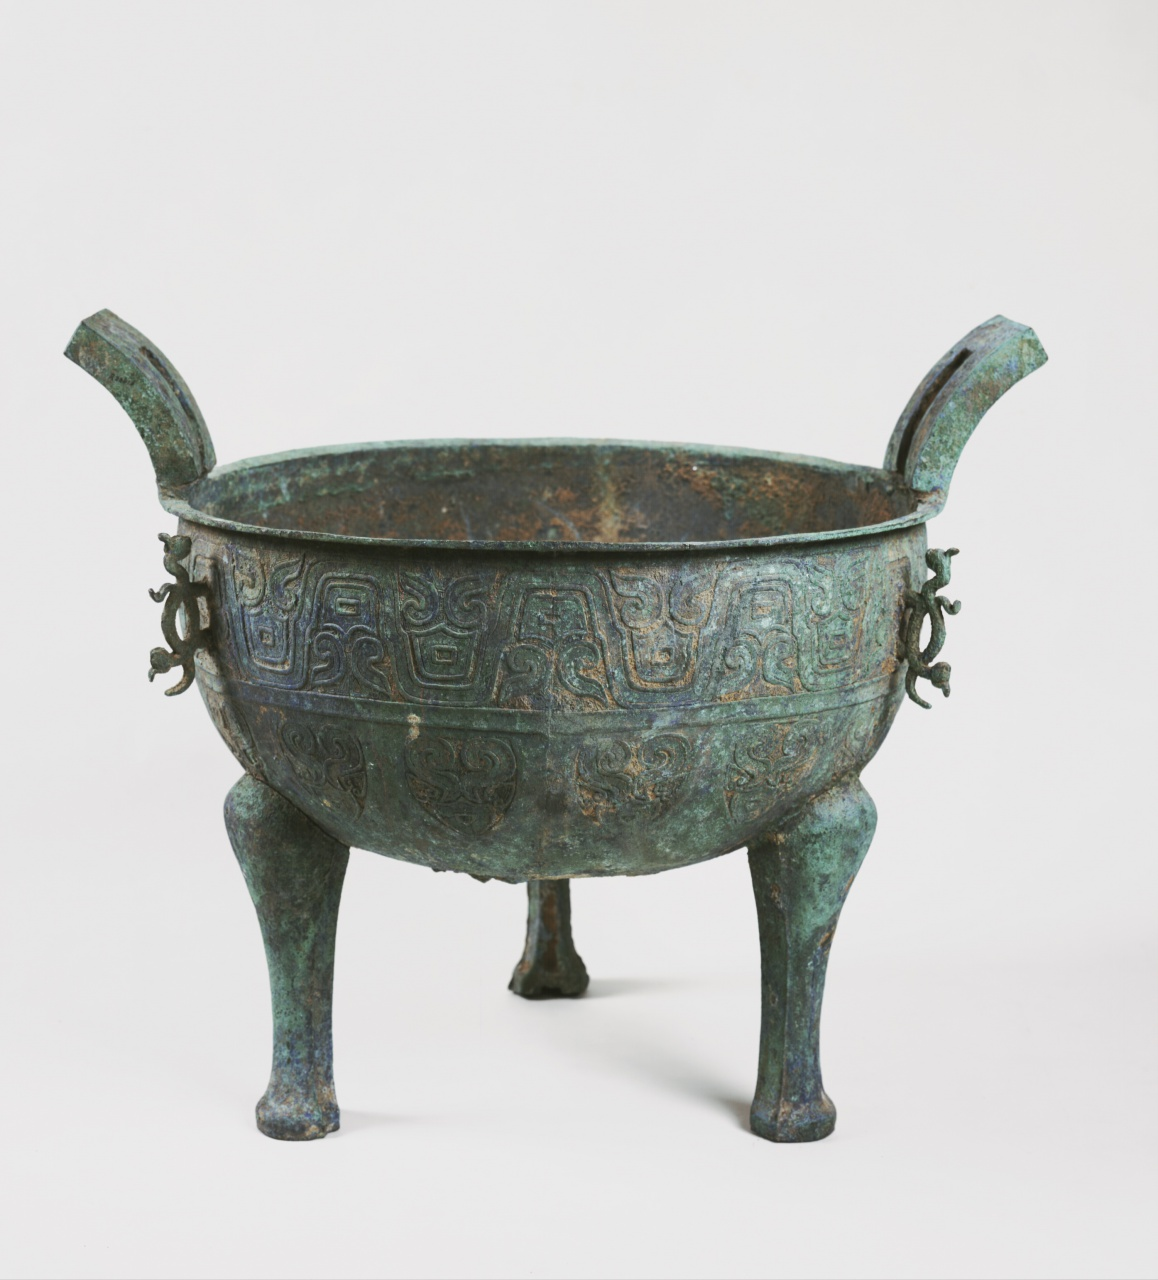 Ting Cauldron with Wave Band Pattern